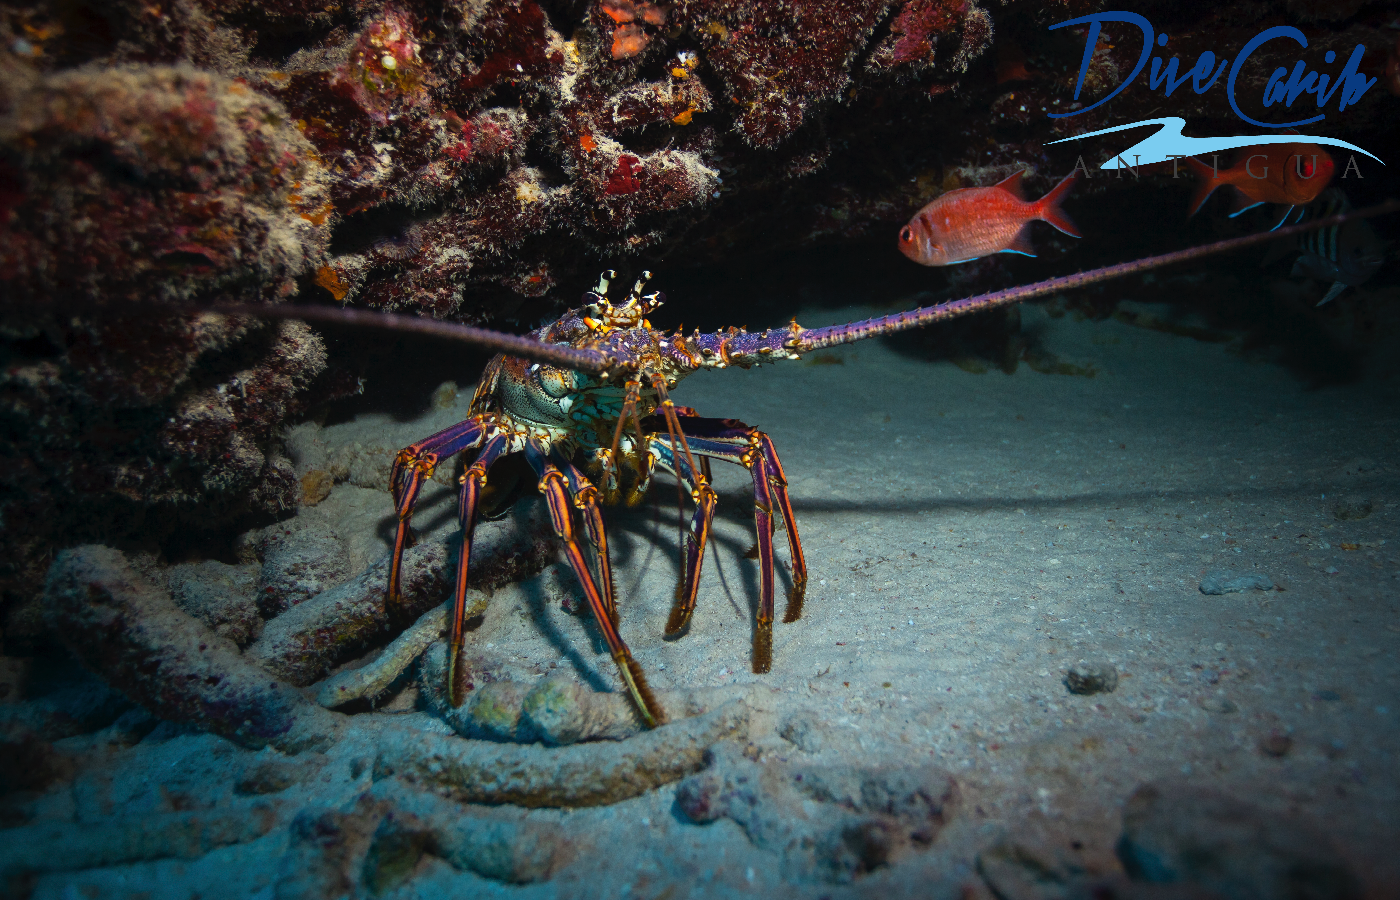 One of the many beautiful Caribbean spiny lobsters (Panulirus argus) that we see on our dives.  These spiny lobsters are particularly important to the fishing industry of Antigua and Barbuda, however there is a closed season from the 1st of May - 30th of June. It is also illegal to harm, take, have in possession, place for sale, or purchase them when they are undersized, carrying eggs, molting, or have a tar spot.  We hope this fisheries can be sustainable for years to come. #lobster #caribbeanspinylobster #spinylobster #antigua #antiguaandbarbuda #scuba #scubadiving #padi #divecarib #econodeco #fisheries #sustainable #seafood #caribbean